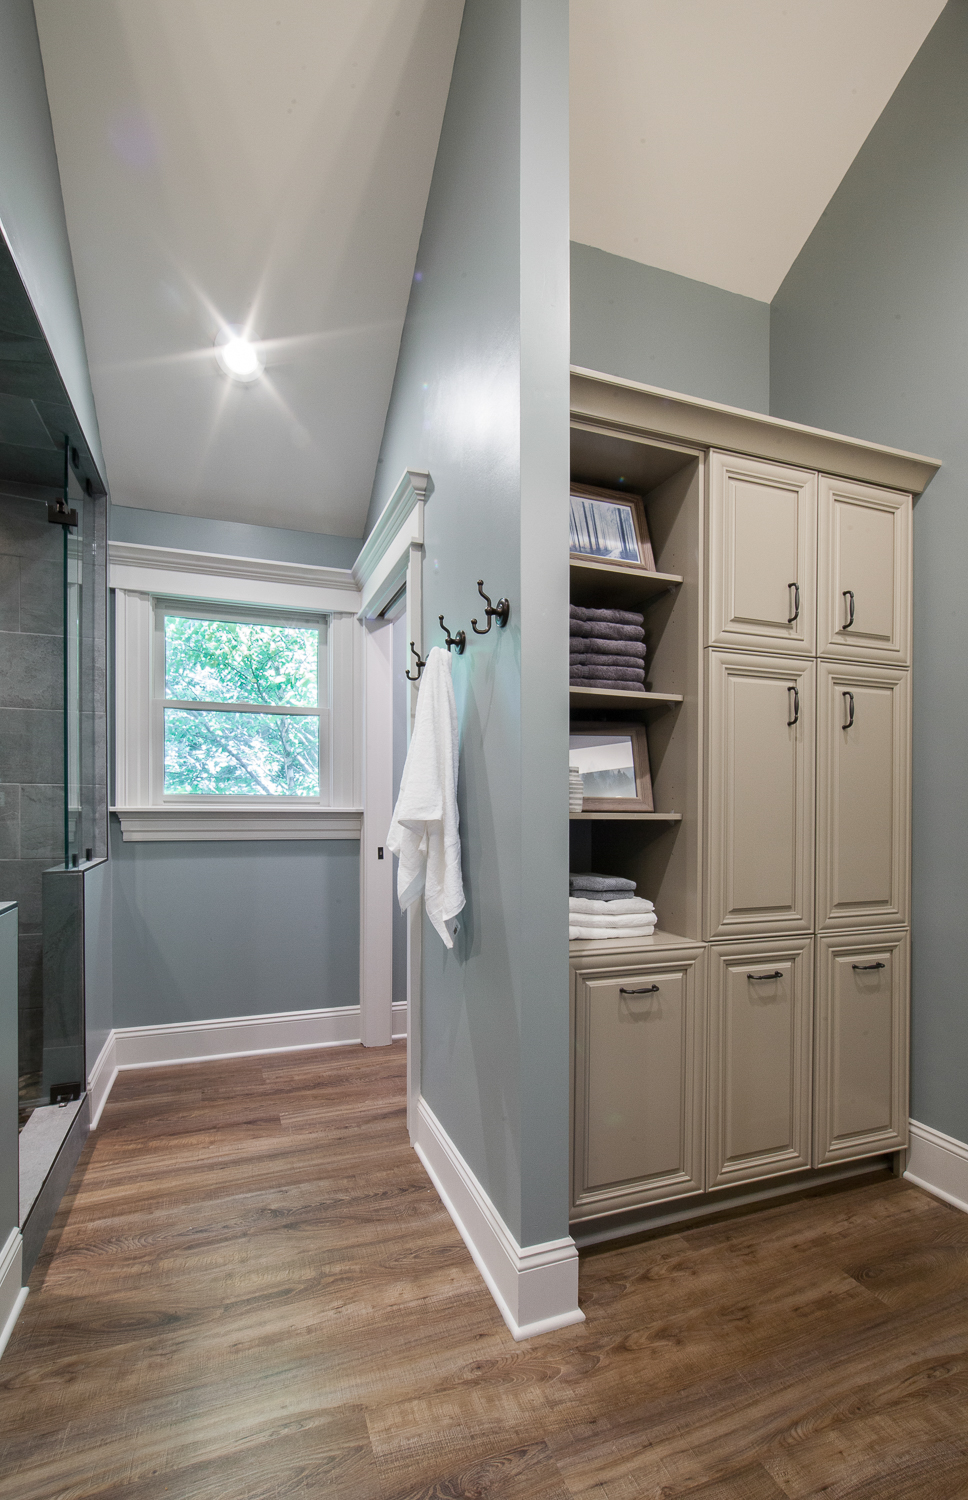 We incorporated this new linen cabinet and matched the door style to the existing vanities.